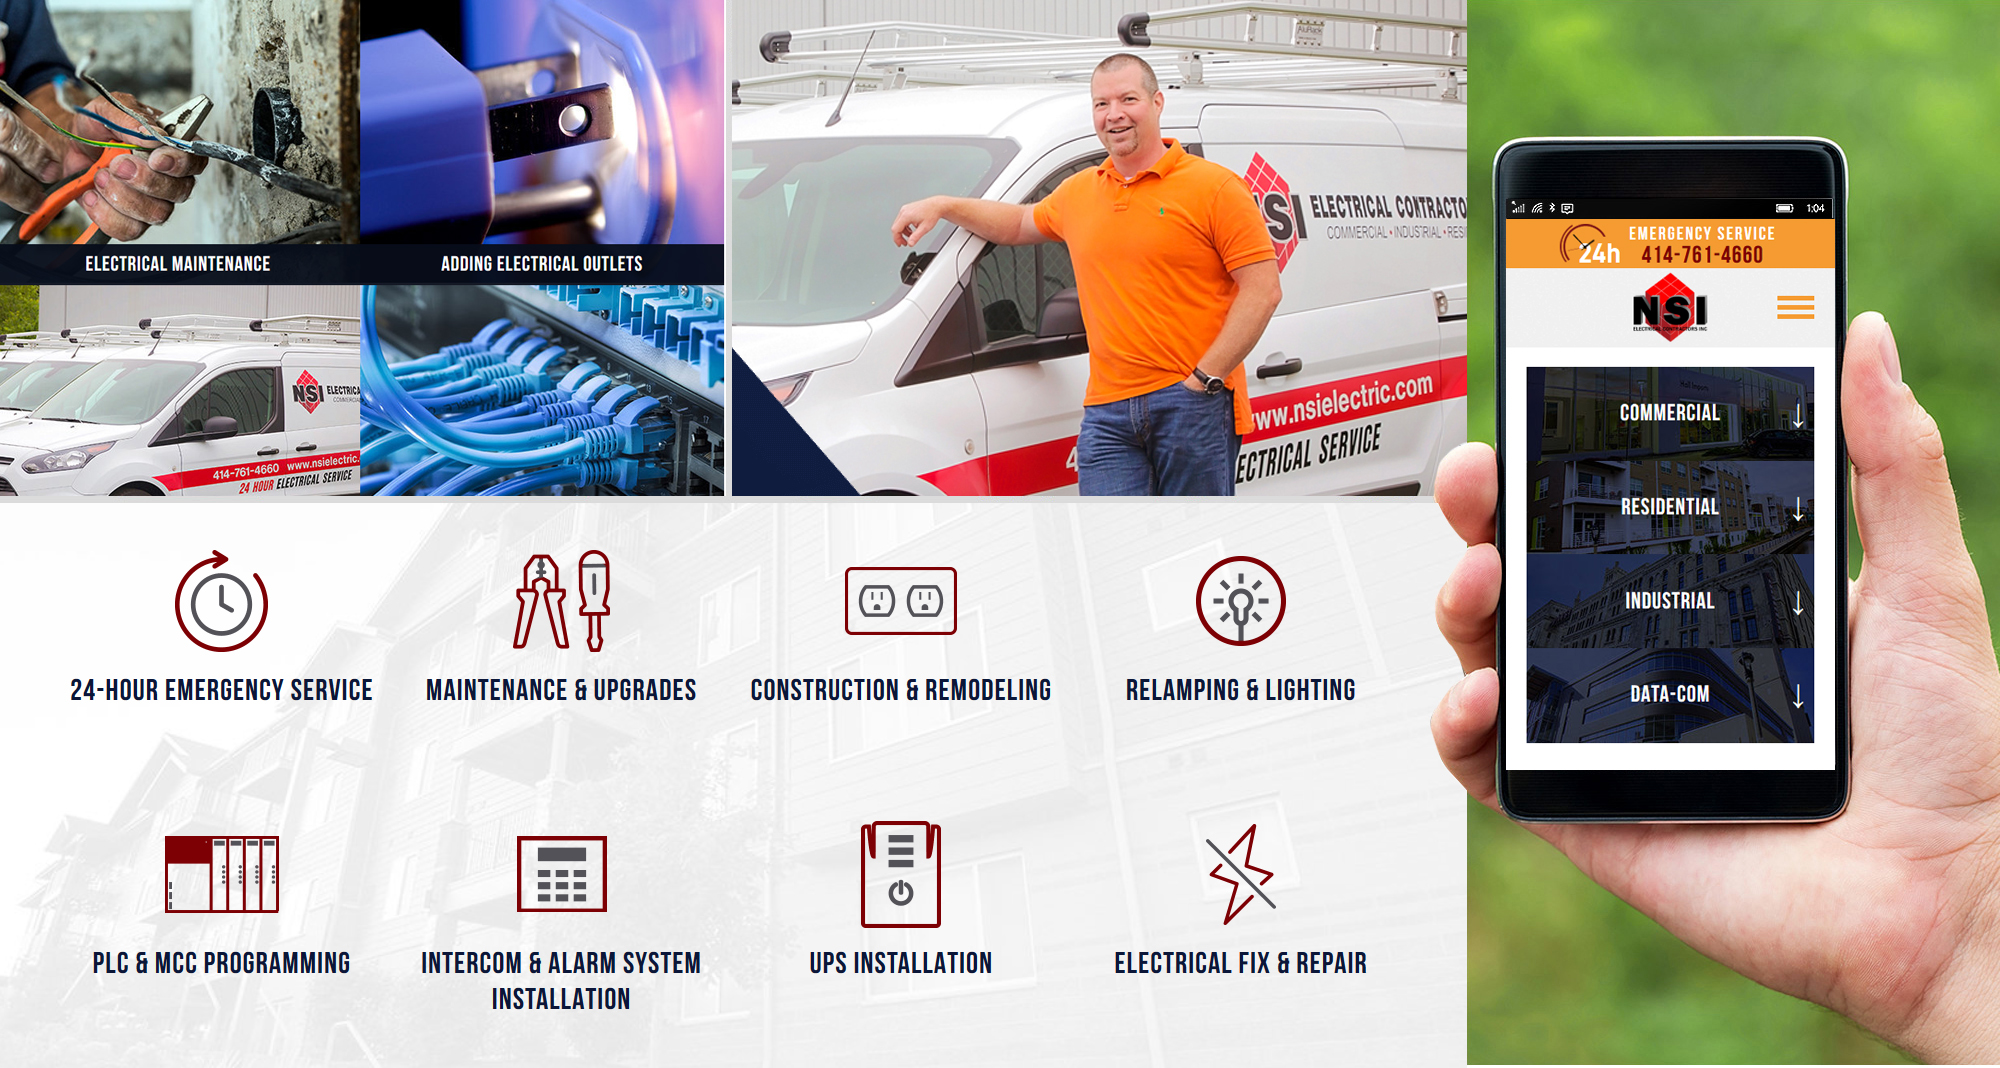 Milwaukee web marketing for NSI Electrical Contractors